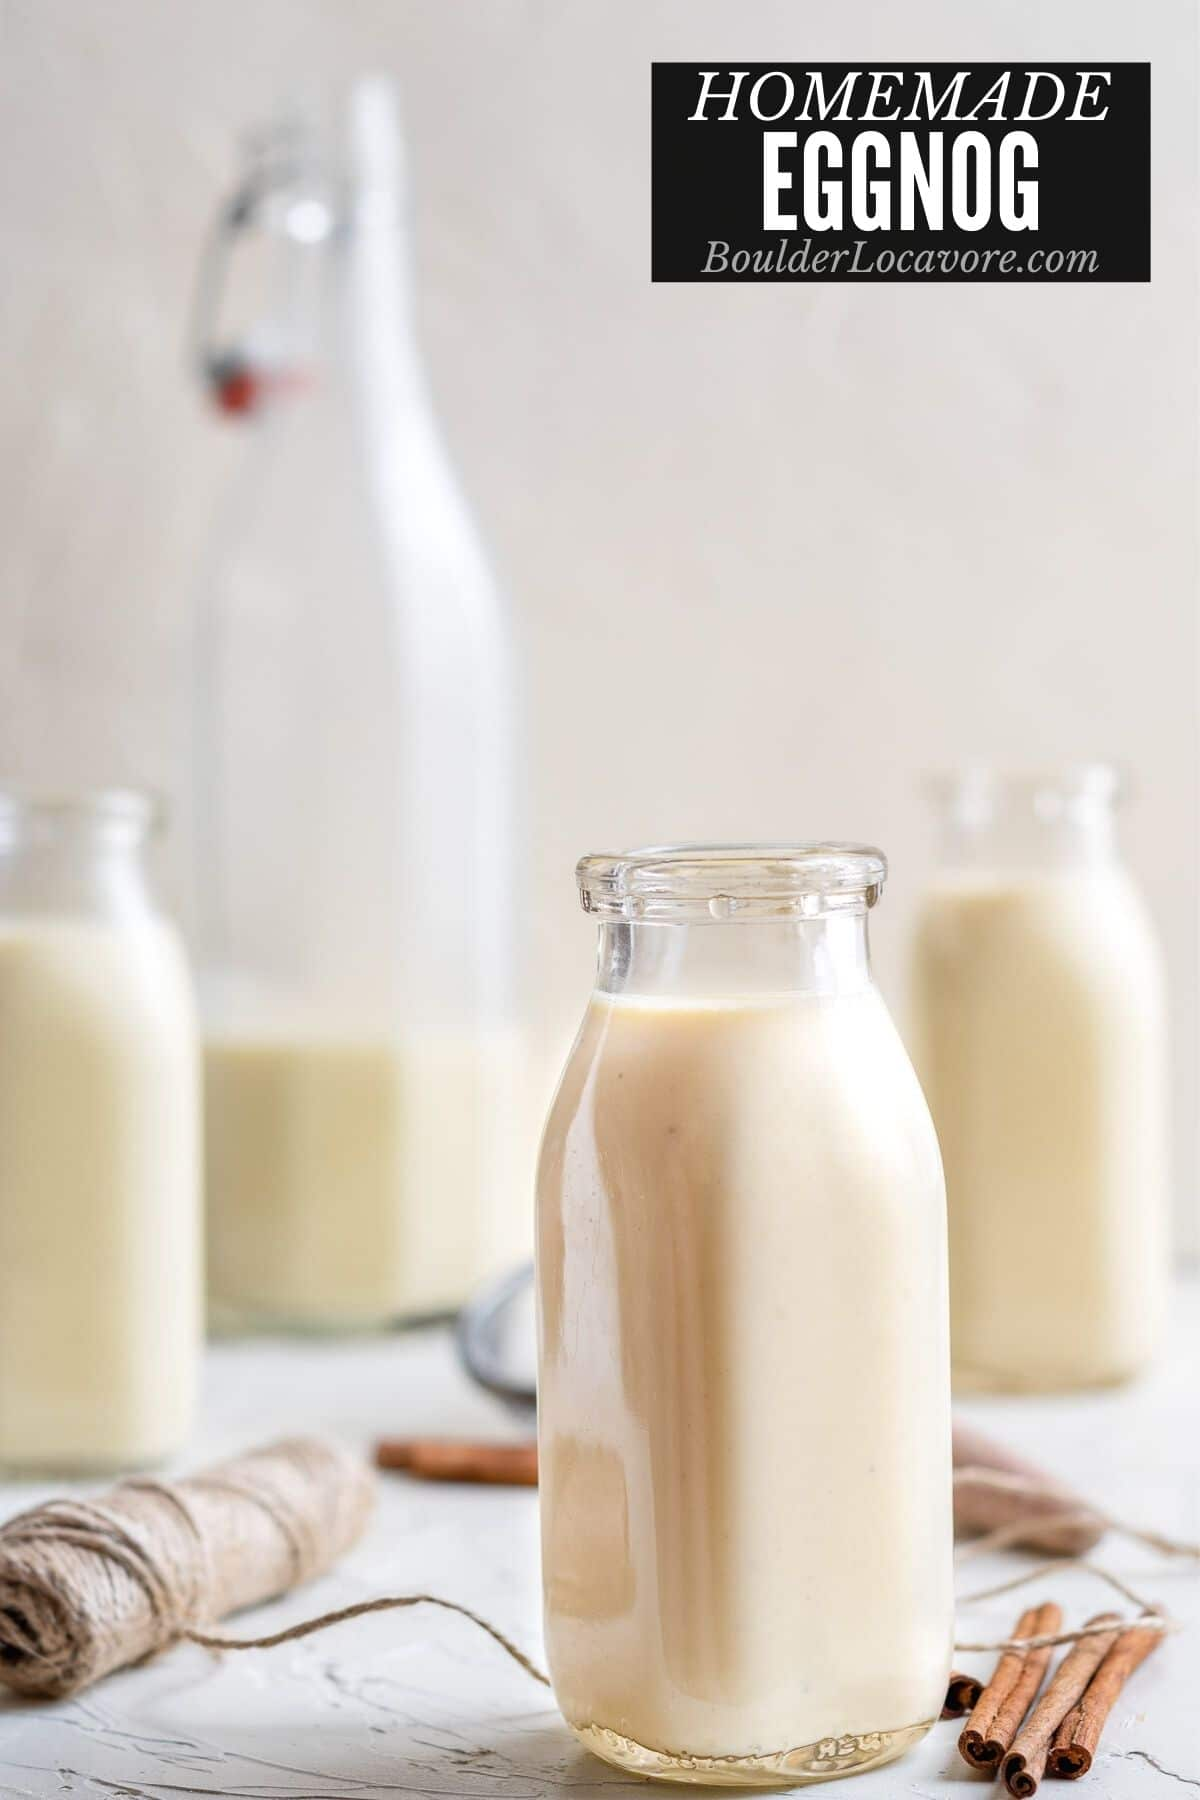 Homemade Eggnog Recipe No Alcohol Boulder Locavore